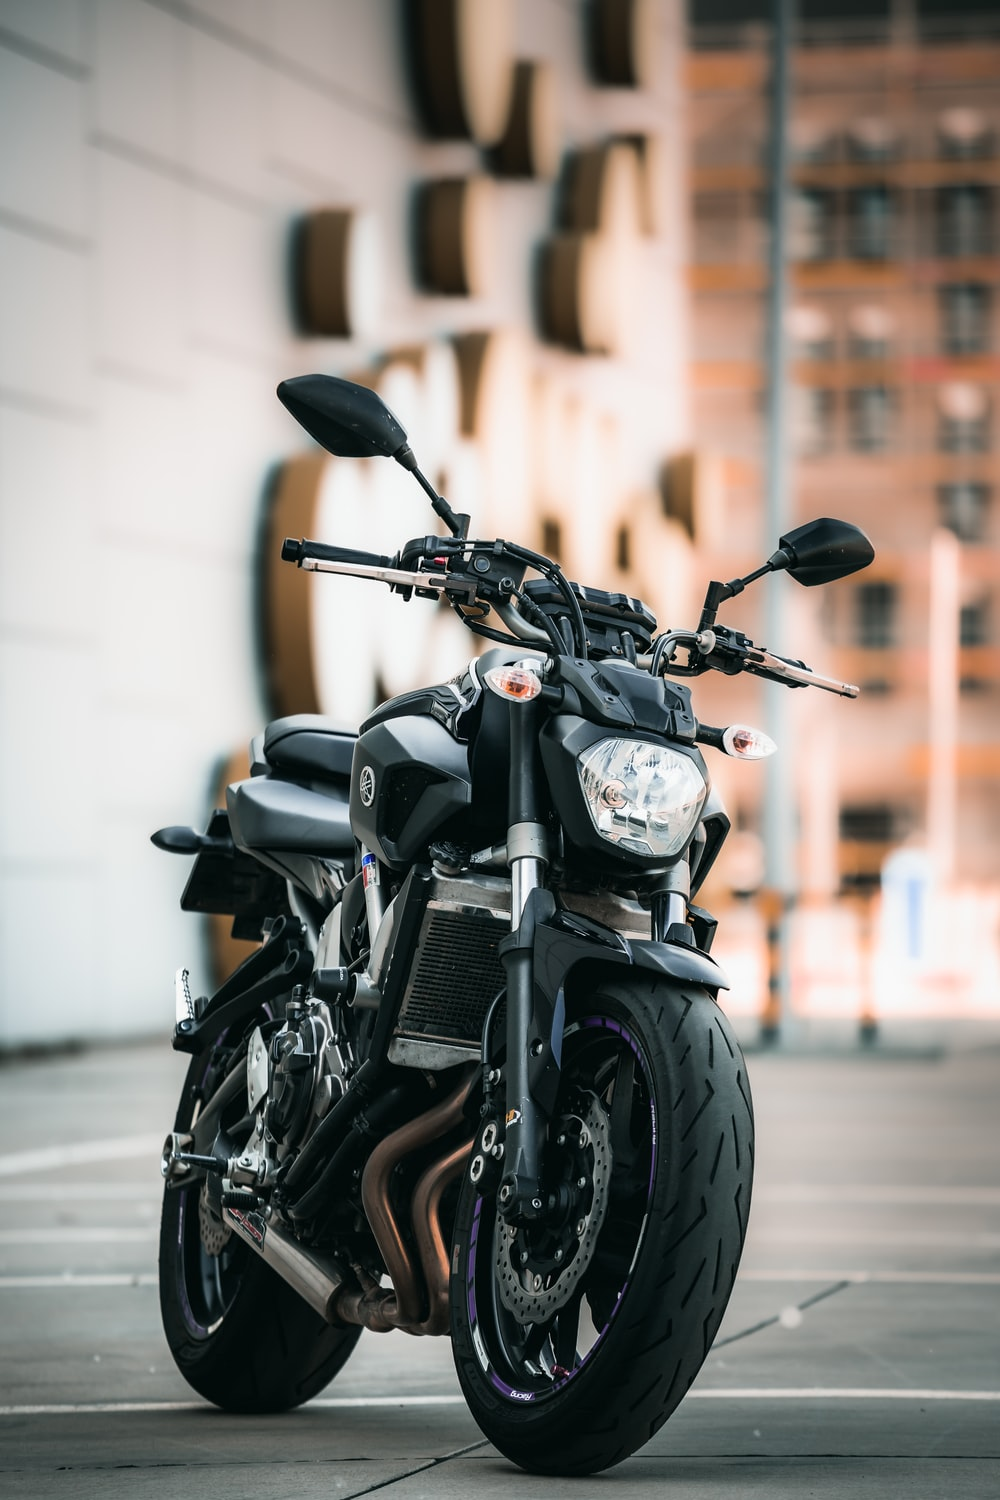 black motorcycle parked on the street